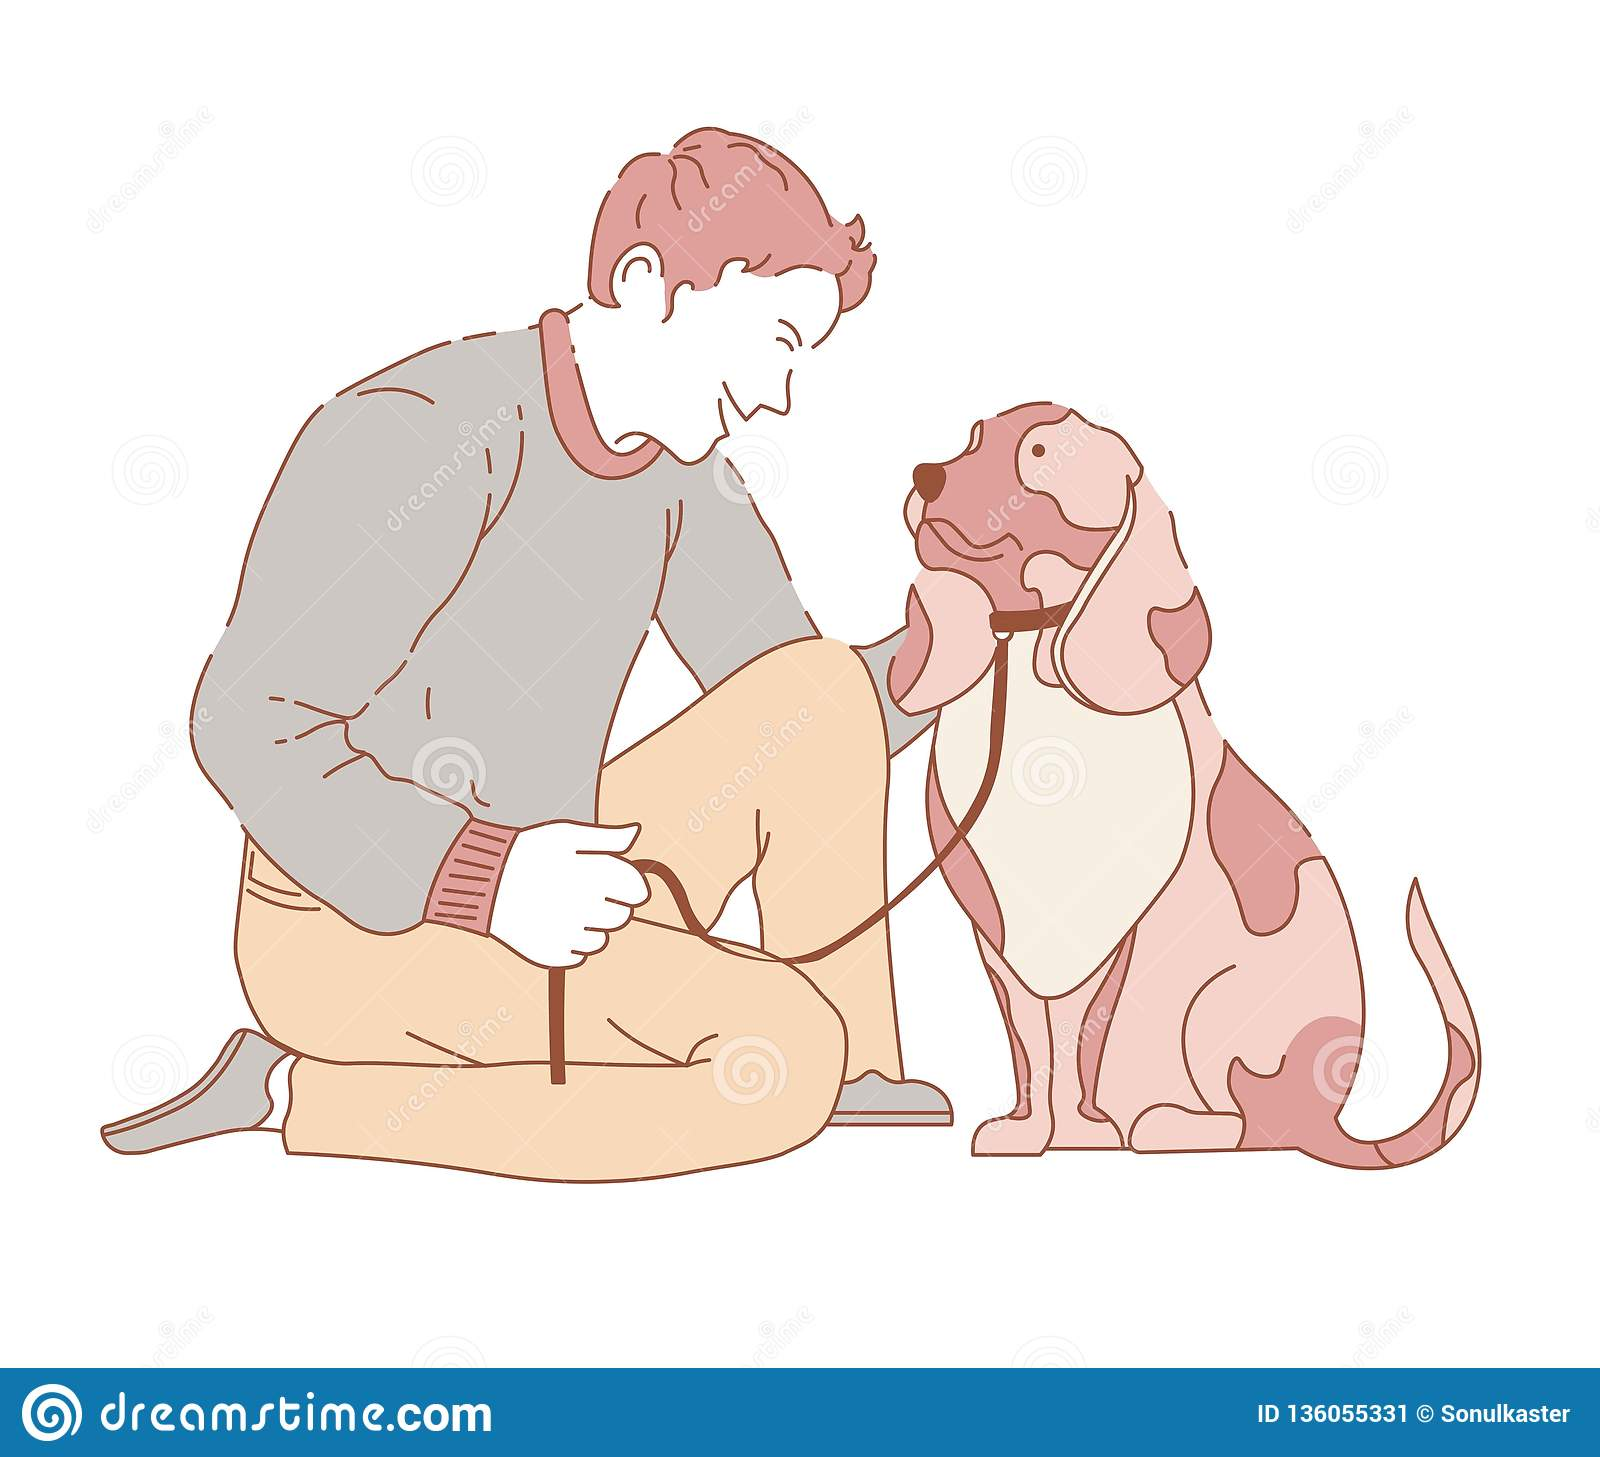 Male spending time with dog canine wearing collar